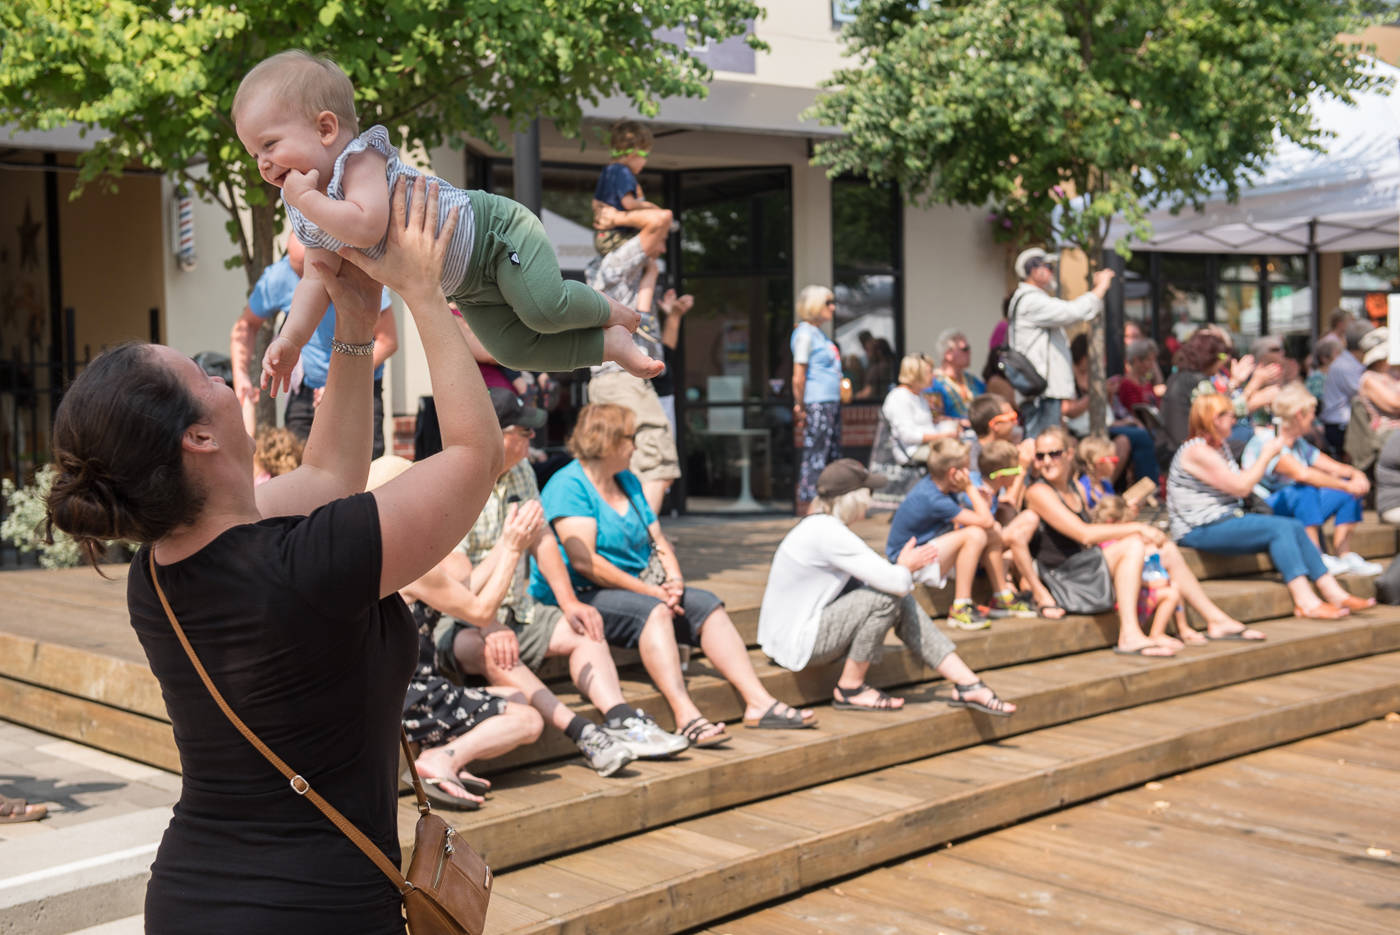 Head to McBurney Plaza Aug. 29 to enjoy the Sounds of Summer.